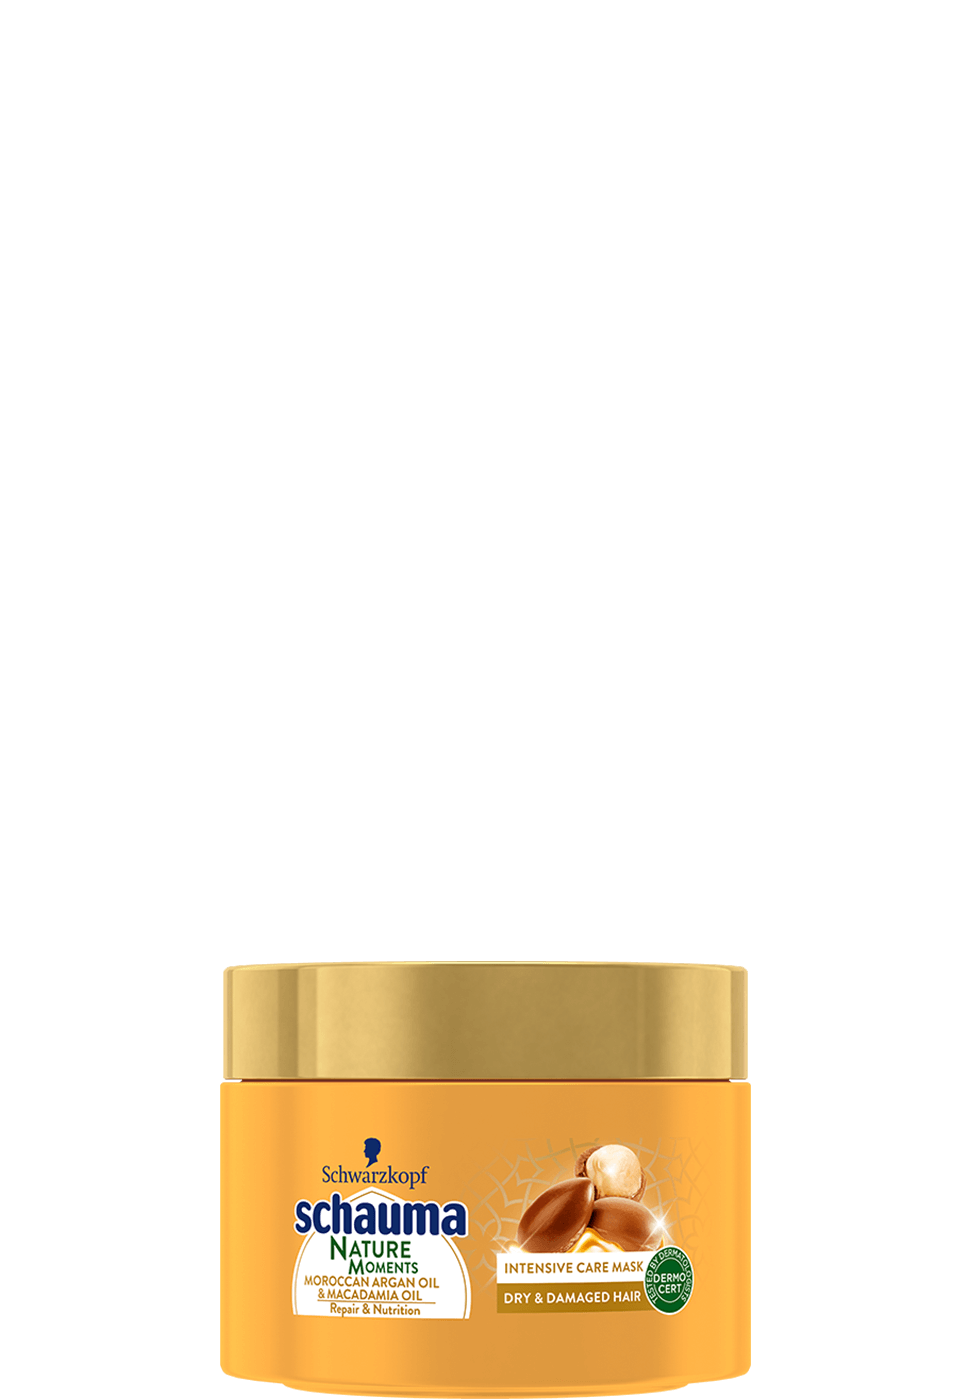 schauma_com_nature_moments_moroccan_argan_oil_mask_970x1400